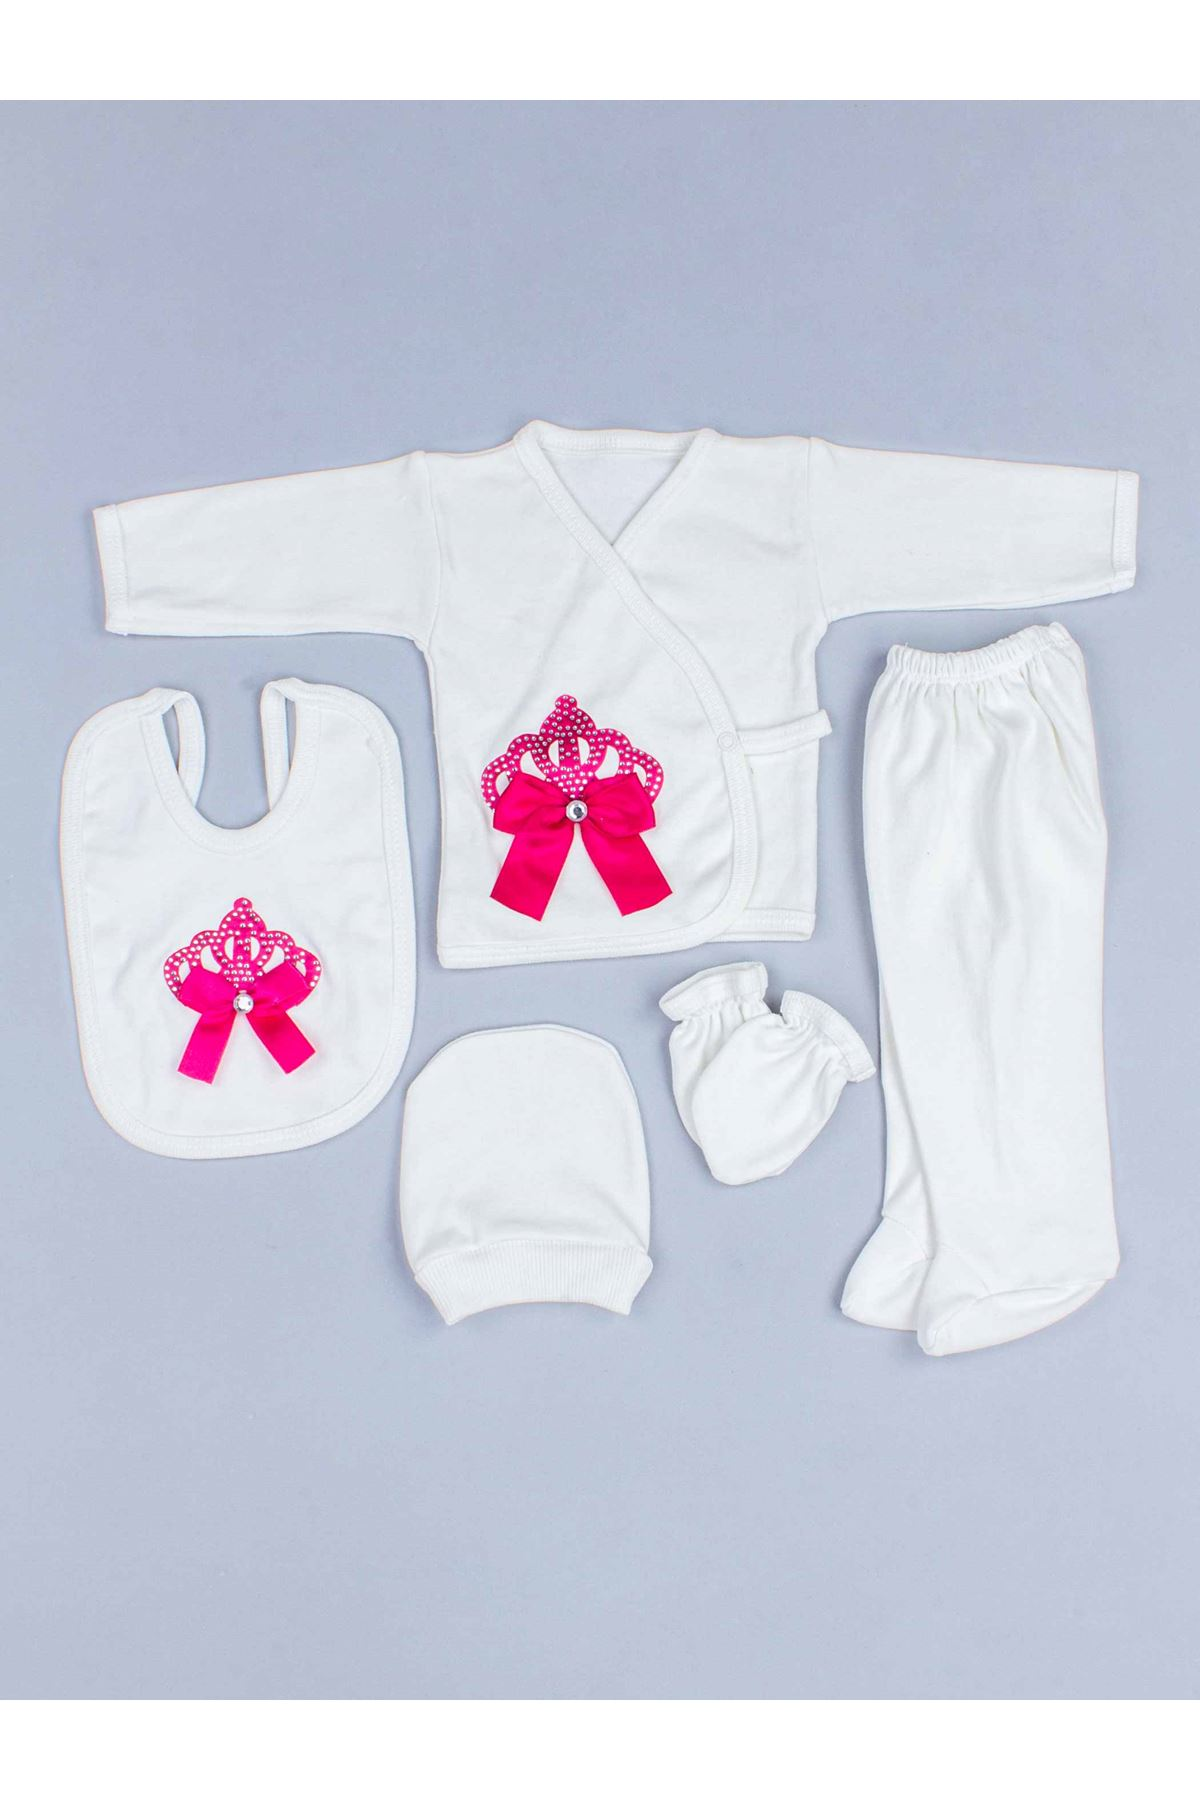 Fuchsia Baby Rompers Girl Boy Newborn Clothes 5pcs Set King Queen Clothing Antiallergic Cotton Babie Types Hospital Outlet Types